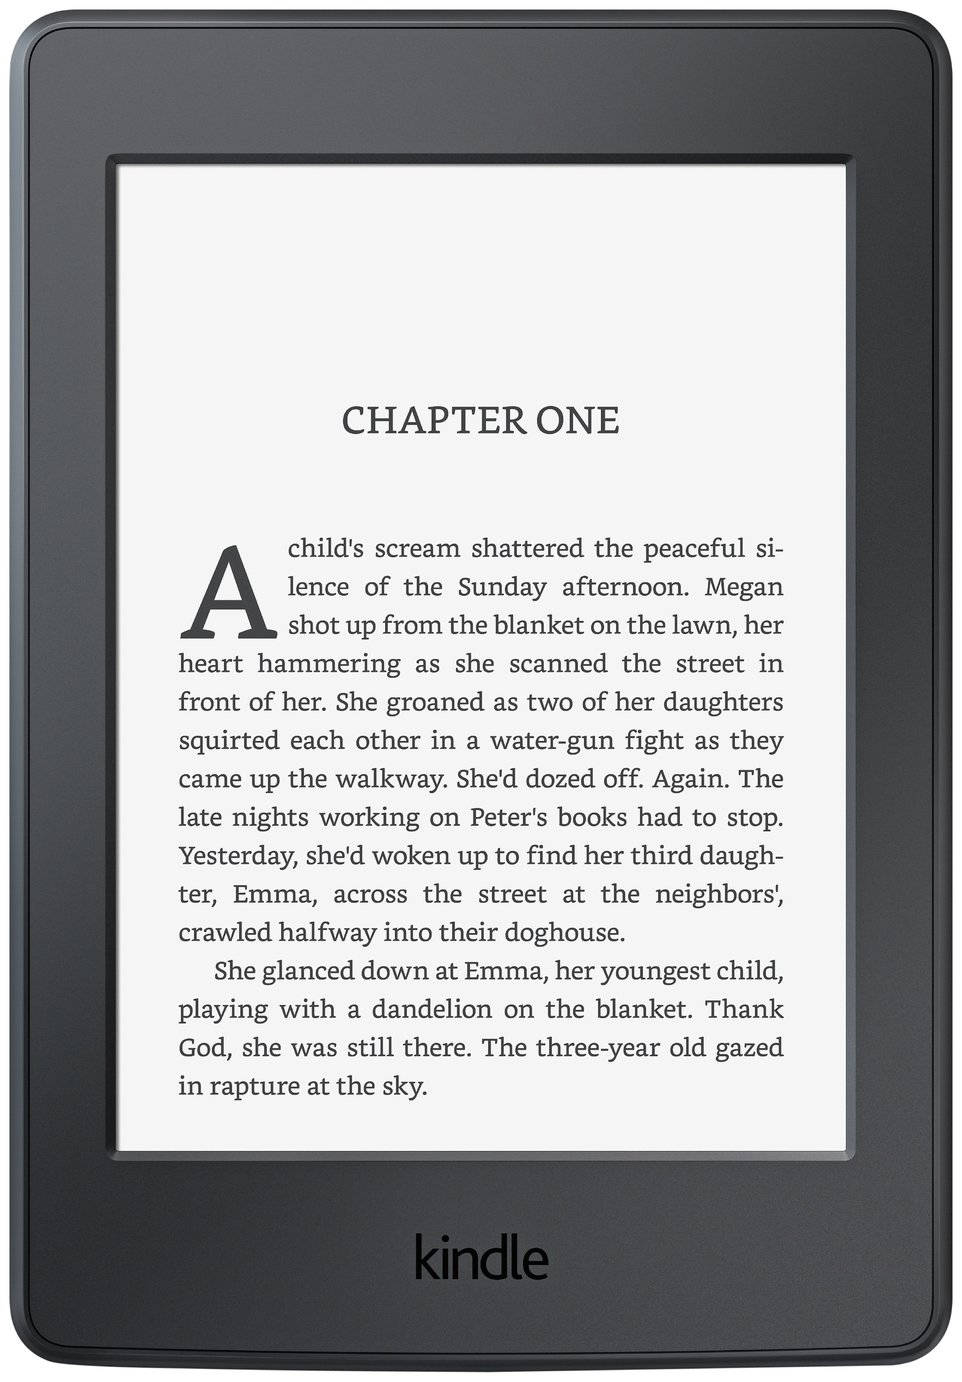 Amazon - Kindle - Paperwhite - 3G.